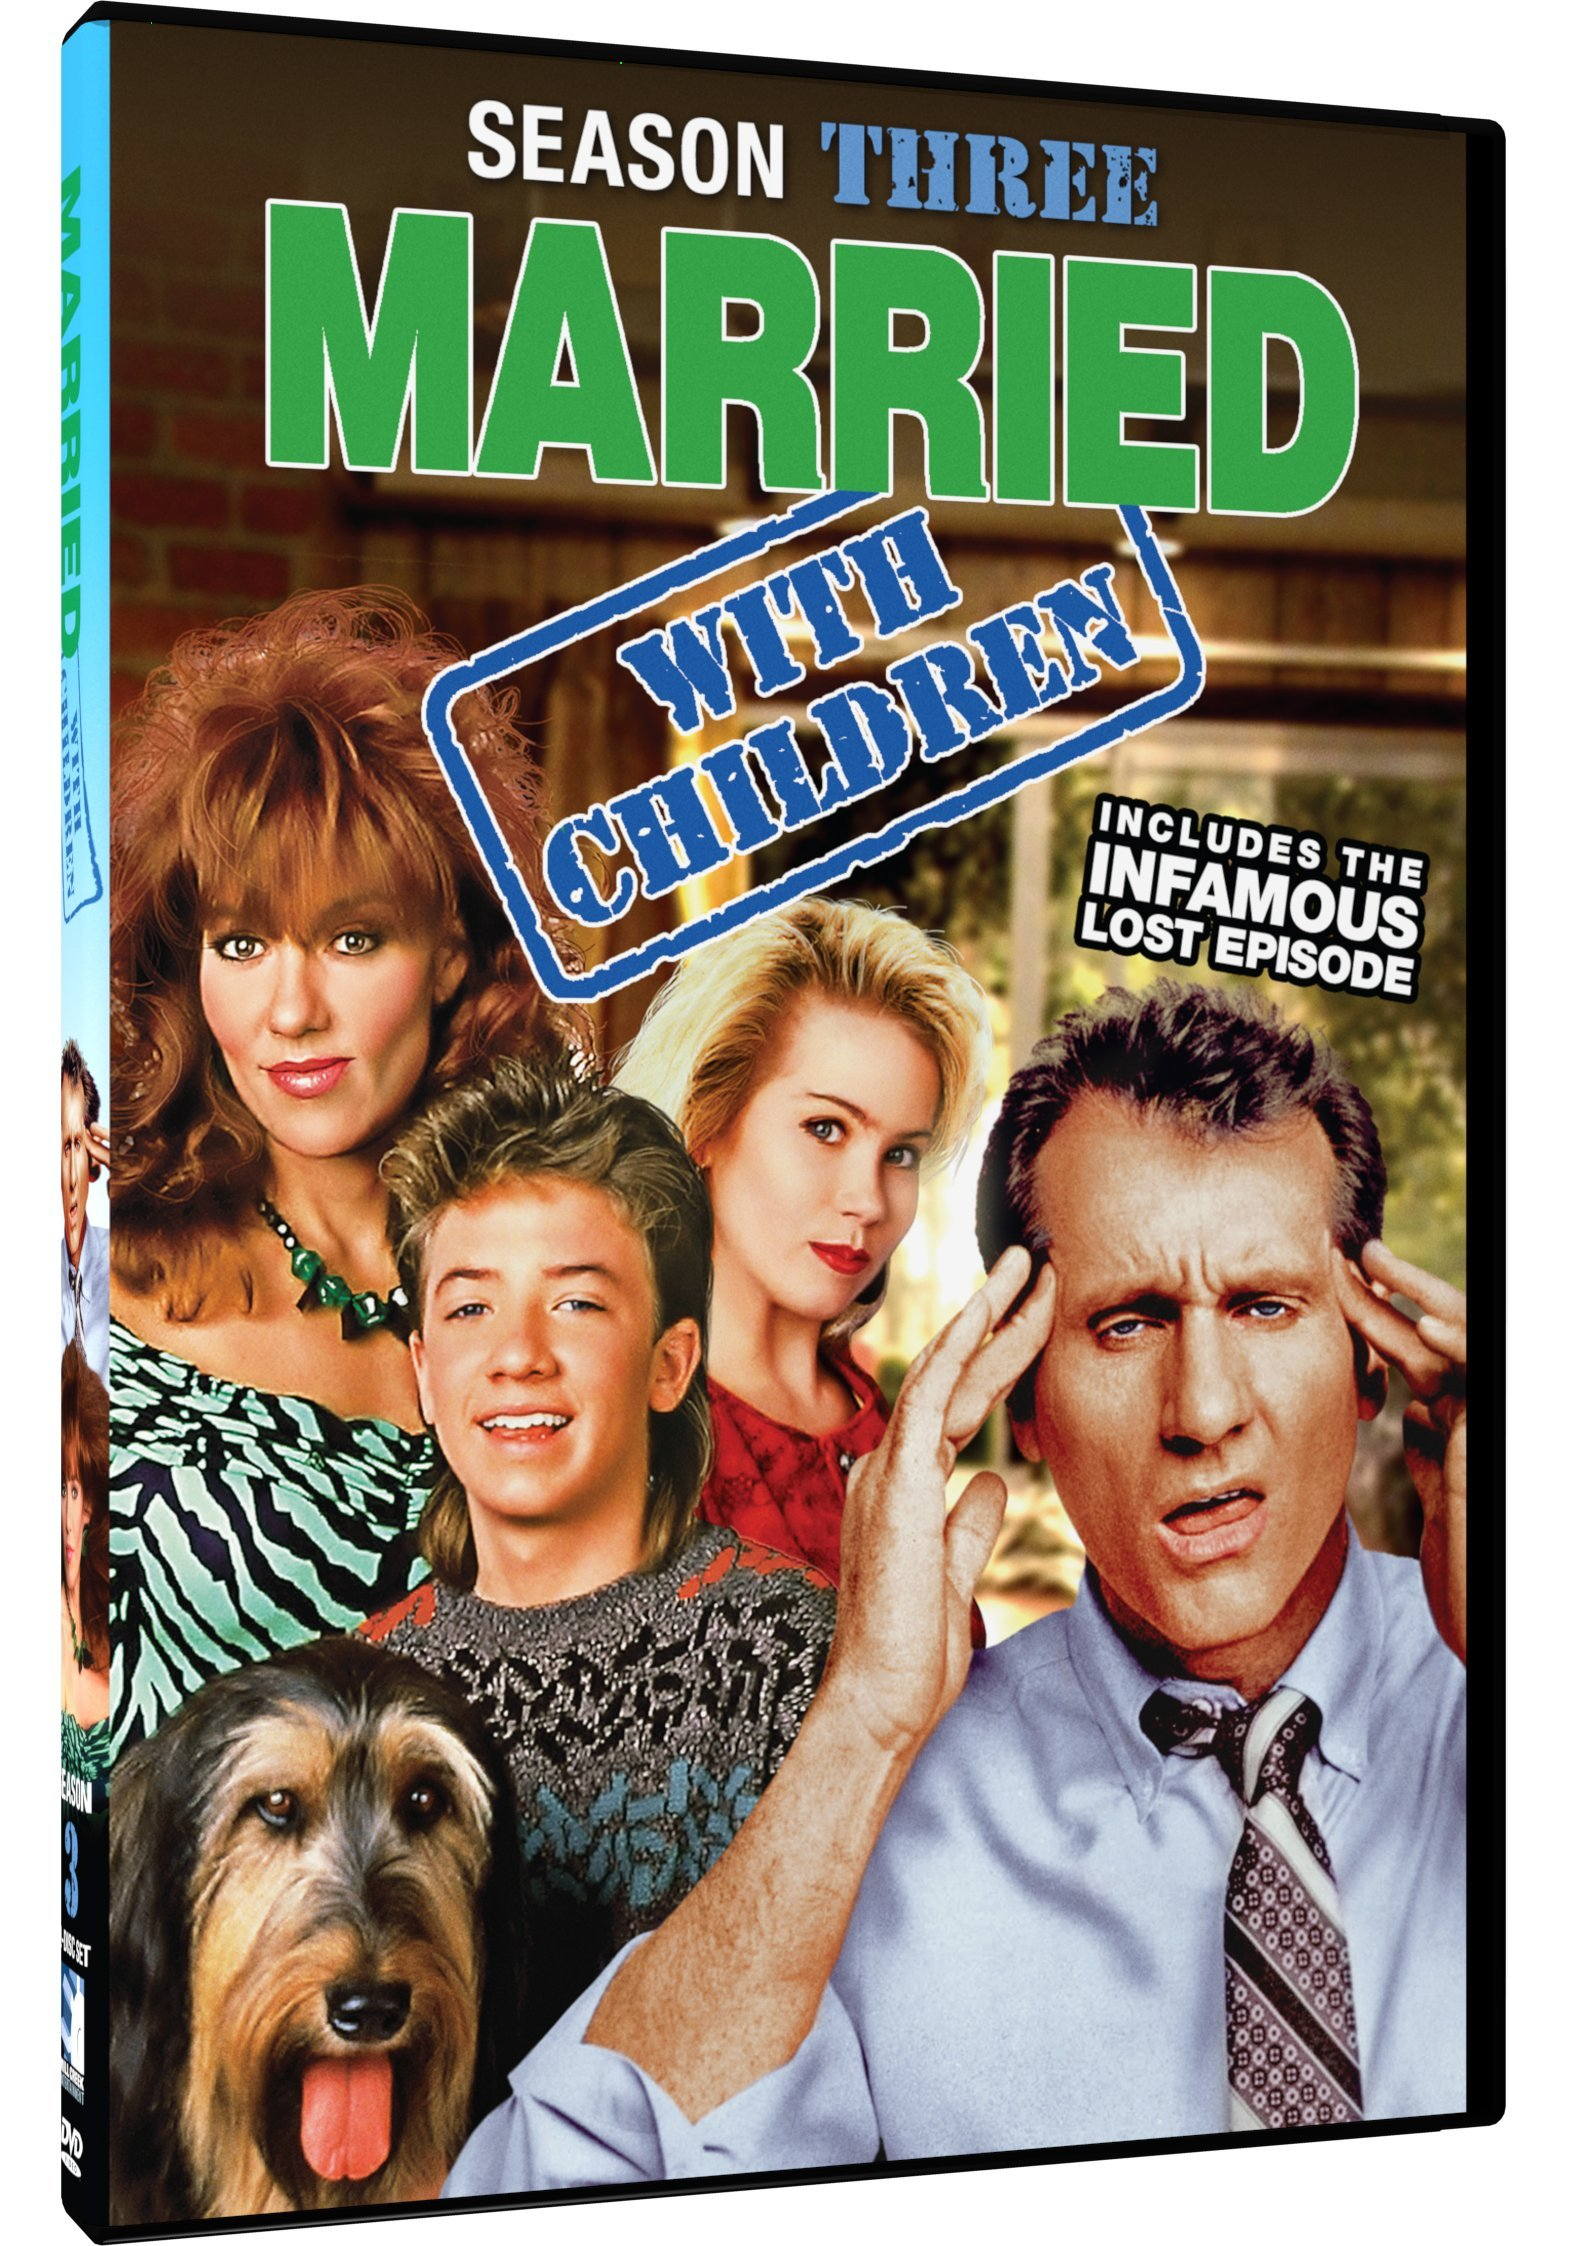 DVD : Married With Children: Season 3 (2 Pack, 2PC)